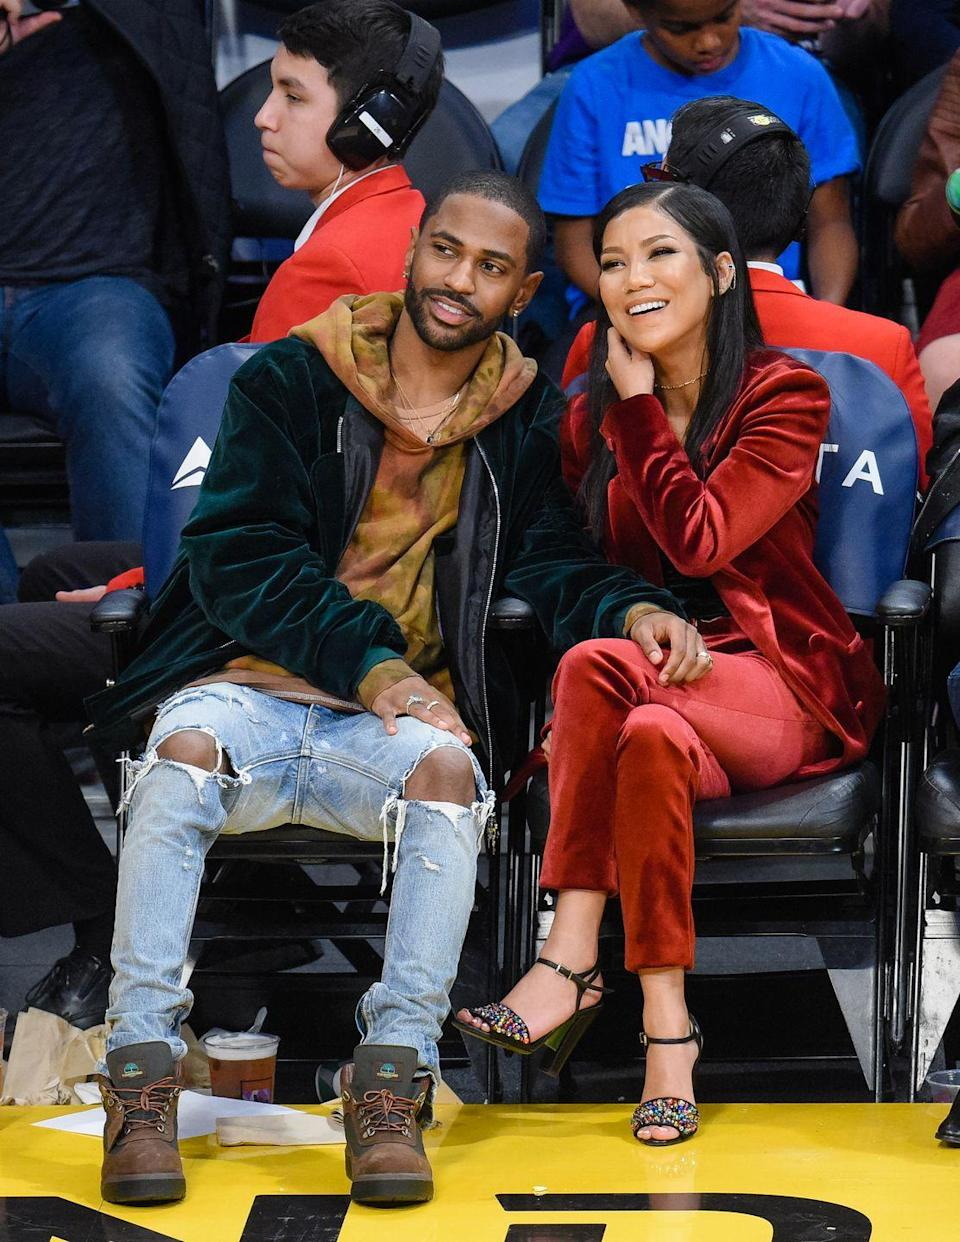 """<p>One look at Big Sean and Jhené's knees, which are angled toward each other, tells Donaldson the couple appreciates any chance they can have to be close to each other. """"The way Big Sean comfortably touches her leg and Jhene does not object signals desire,"""" she says.</p><p>Plus, """"the physical space between them while sitting is minimal to none, and this indicates a high level of happiness and closeness in their relationship,"""" Donaldson adds. Even while their attention is focused on the basketball game, she's confident Jhené and Big Sean have each other on the brain because of the way they're leaning toward each other.</p>"""